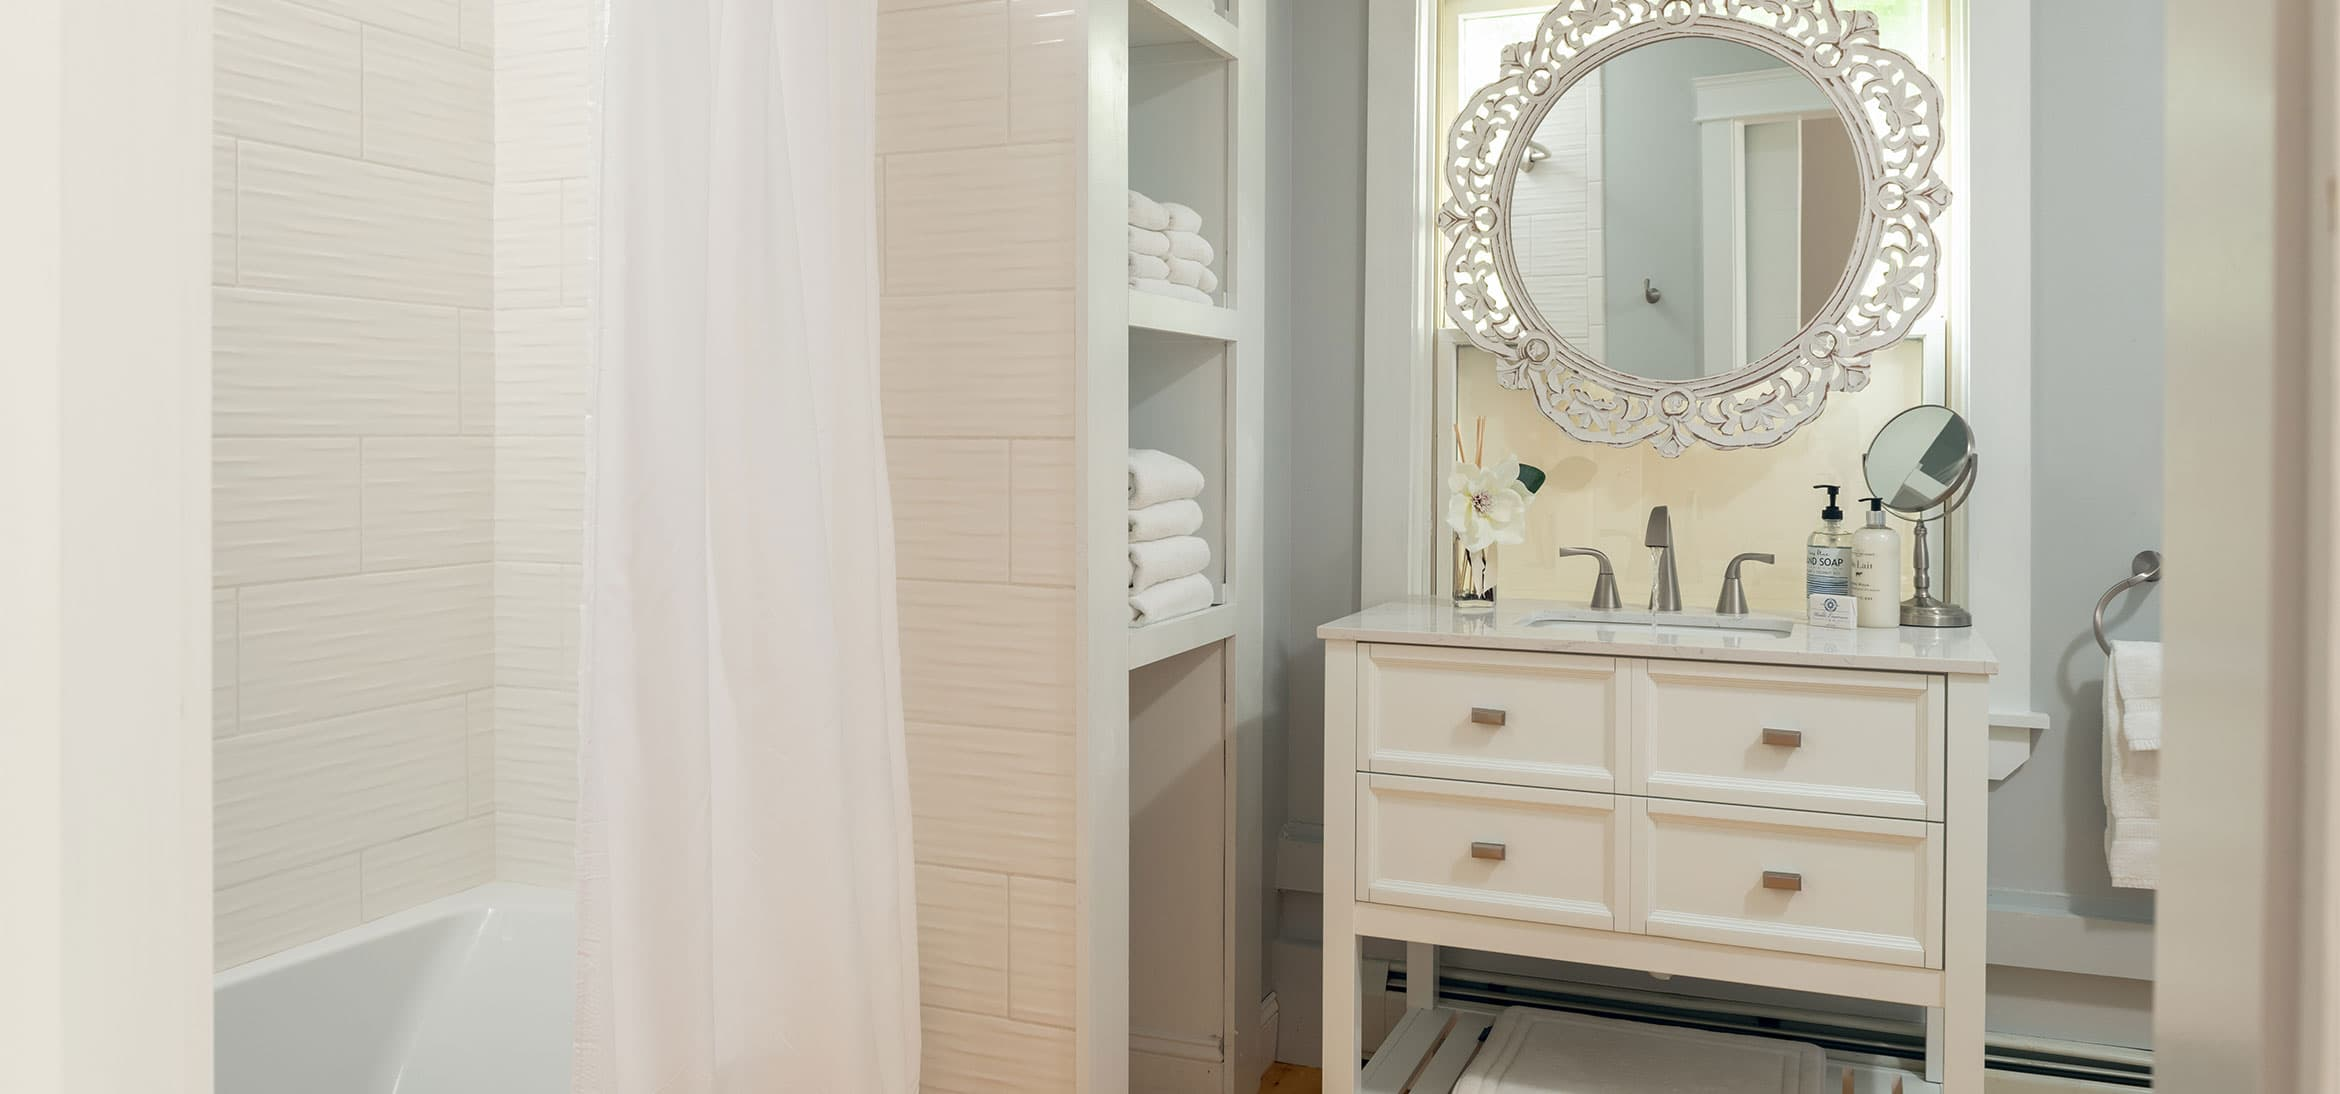 Bathroom with a ornate round mirror, vanity sink, a tub and shower